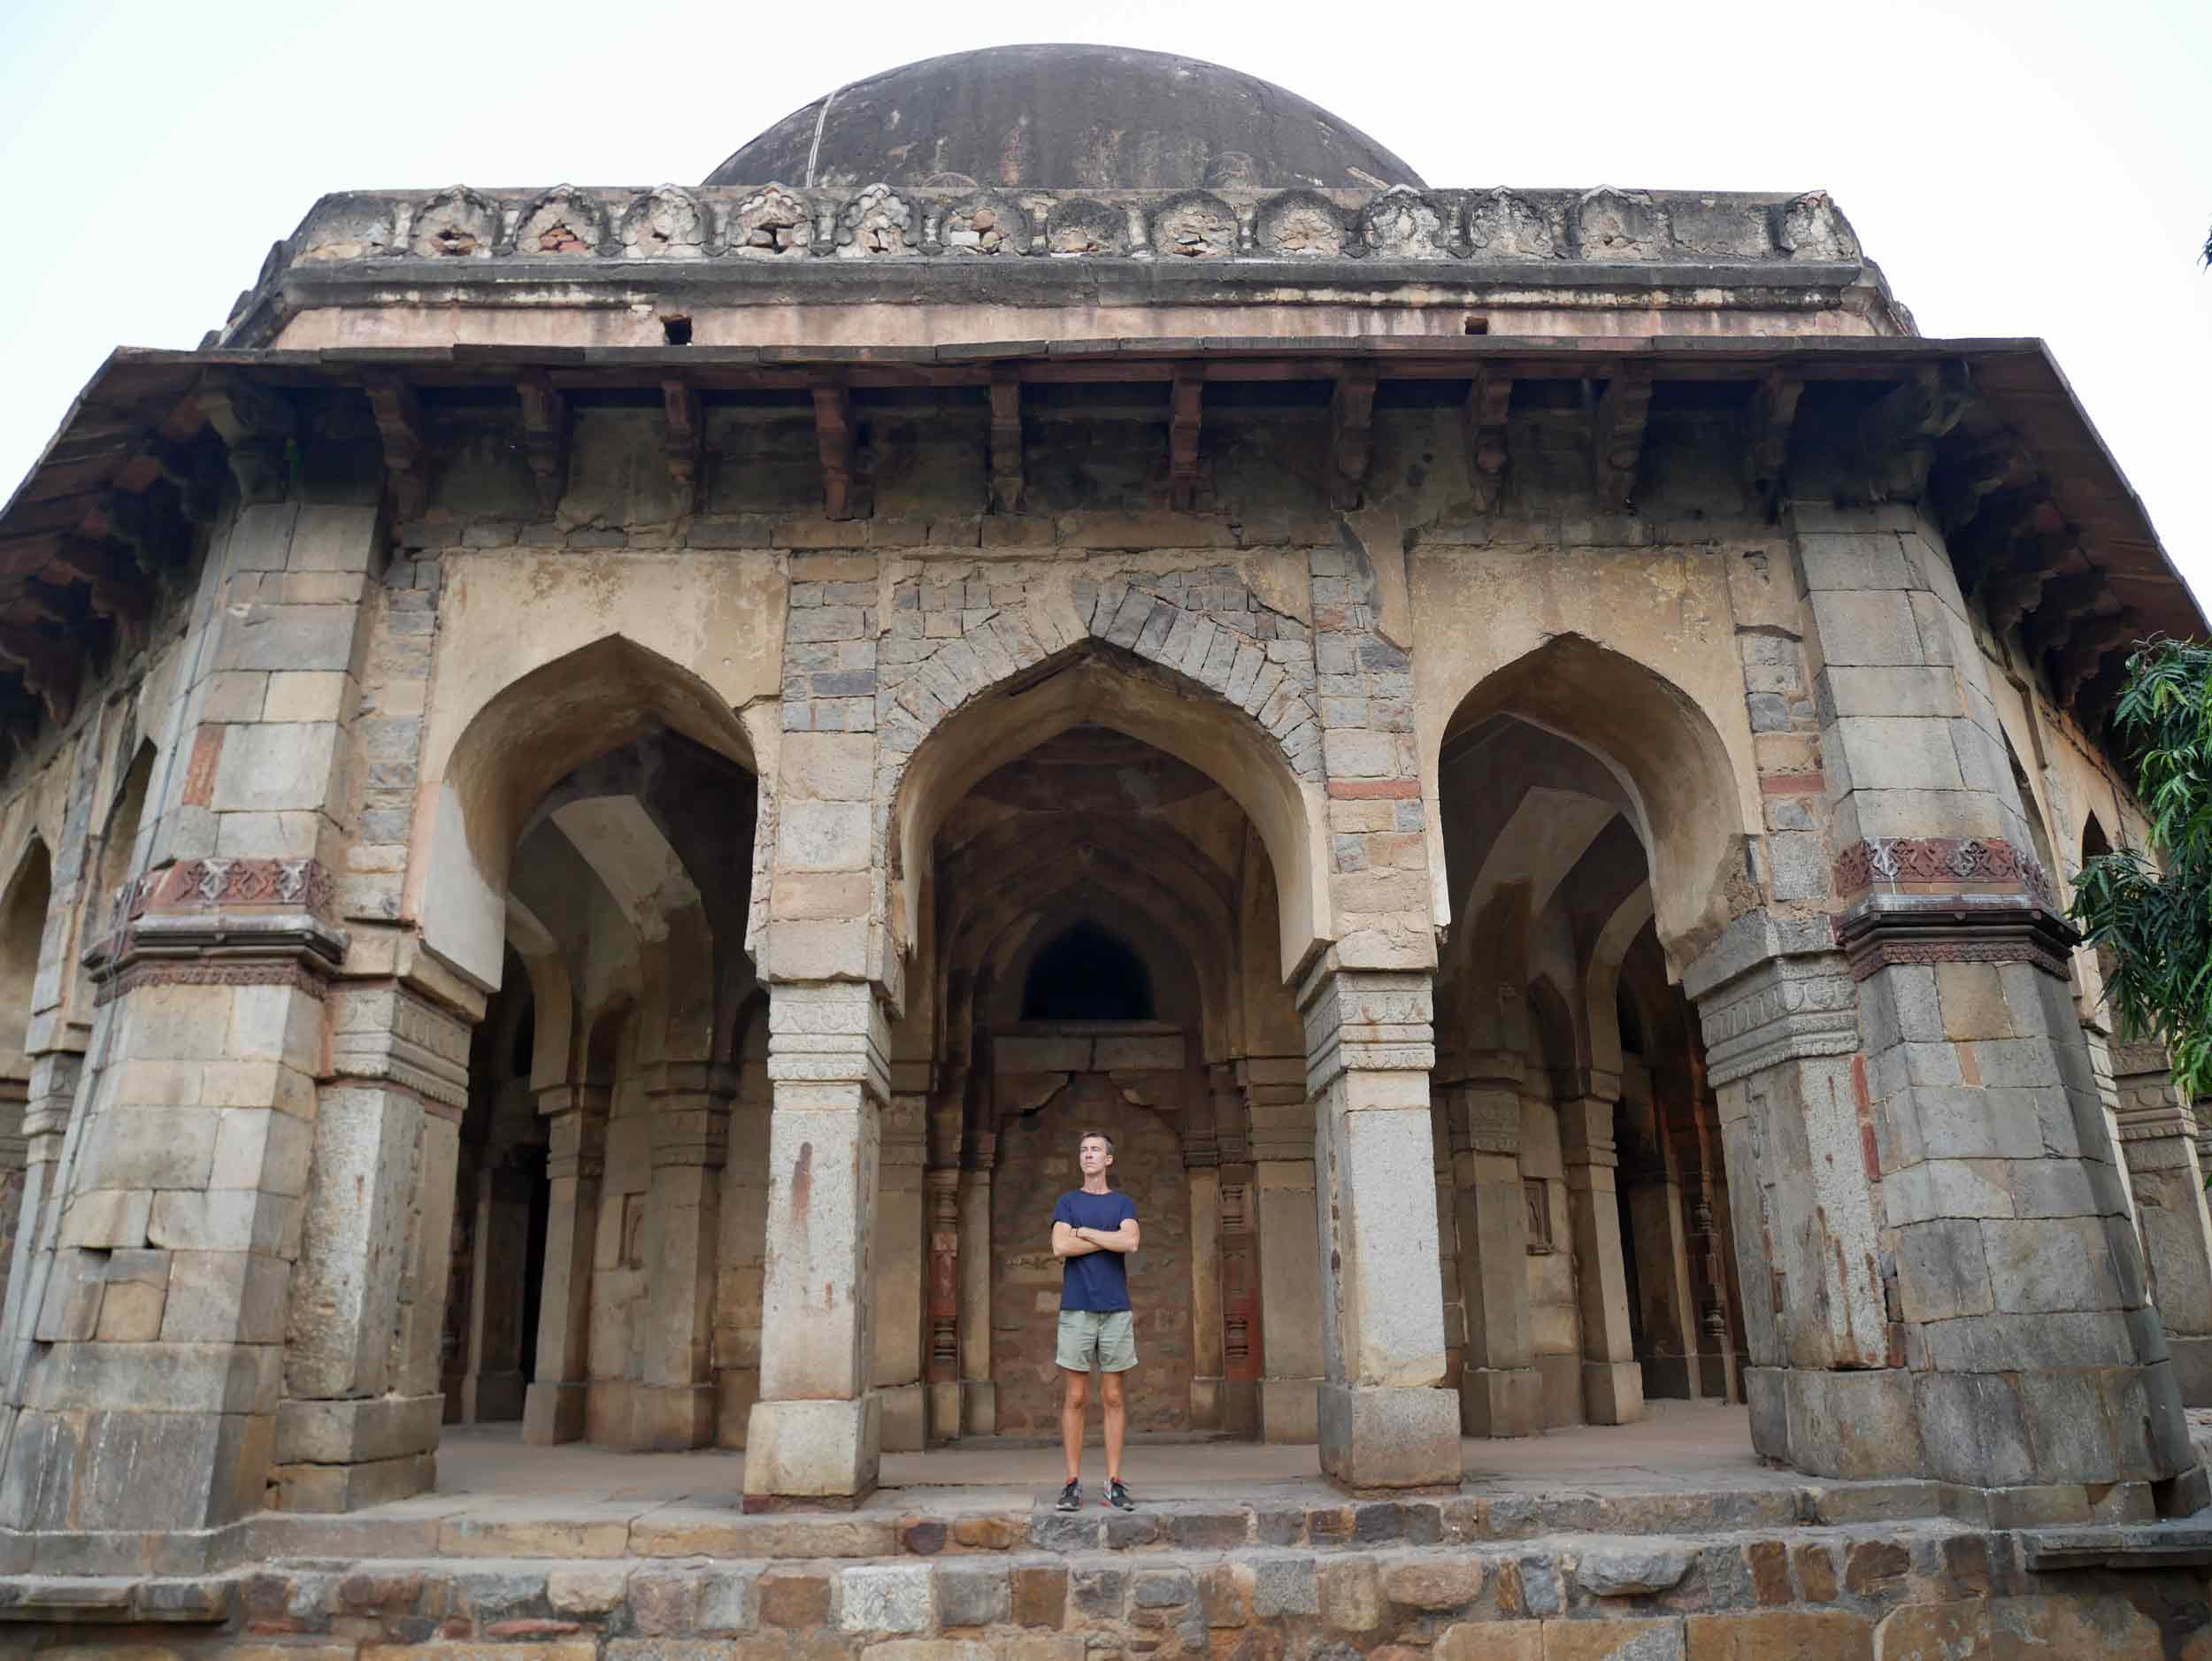 Lodi gardens is a stunning oasis within the city and the site of tombs for the Loti family, rulers of parts of northern India and Punjab from 1451 to 1526.